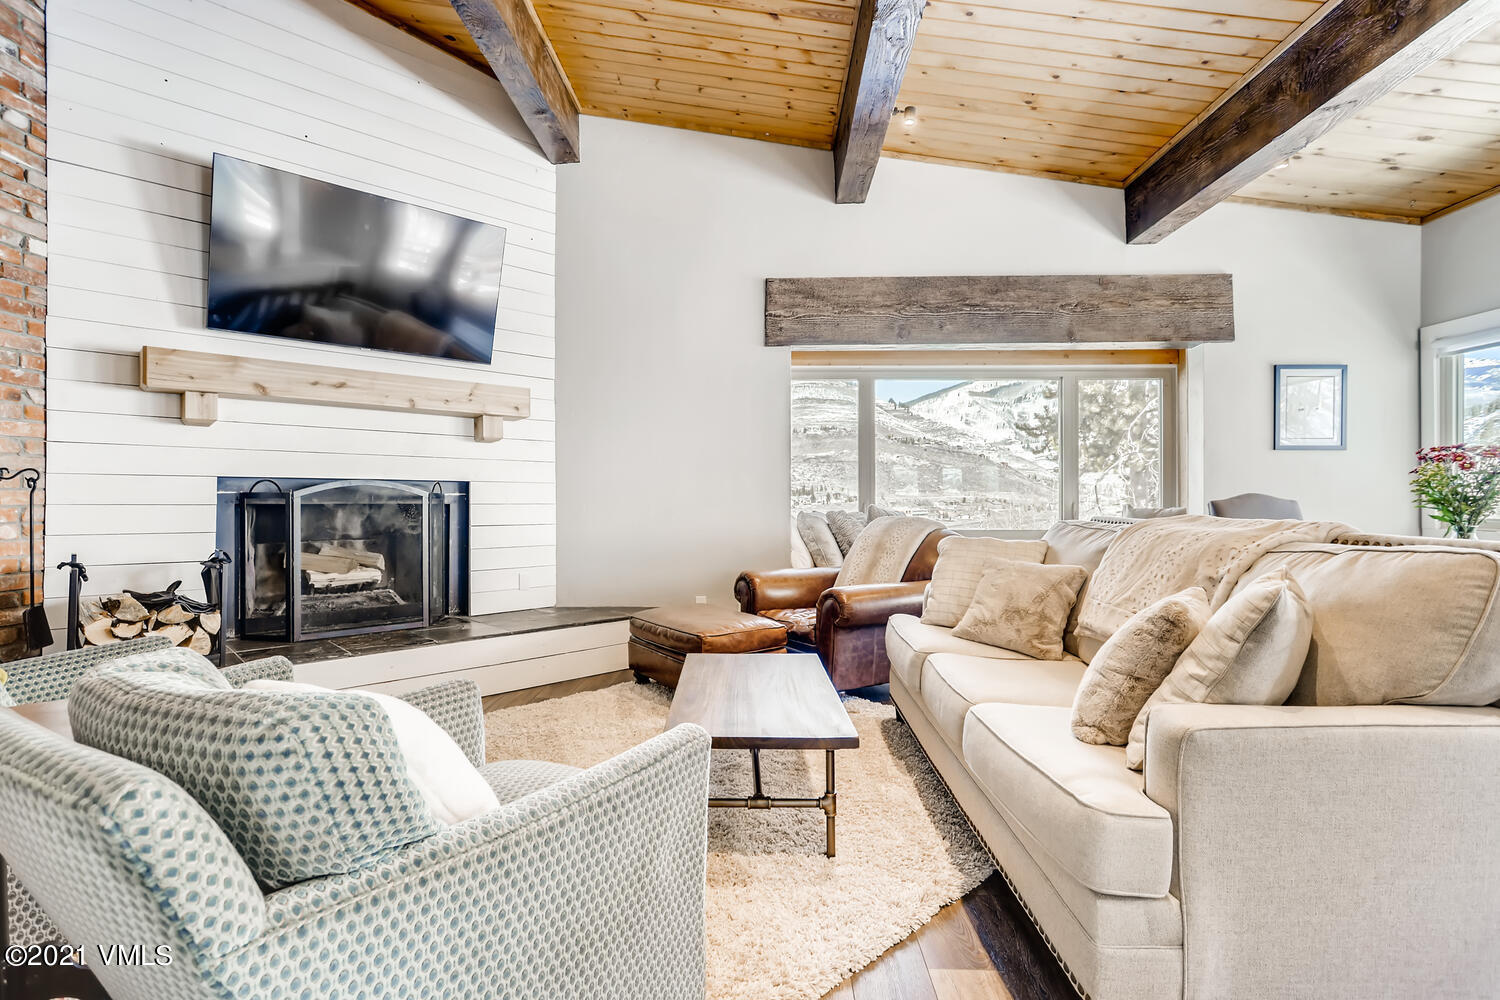 Fantastic home in Highlands Meadows Neighborhood in West Vail South Completely remodeled with a great space layout and level of finish. This is a home you do not want to miss!